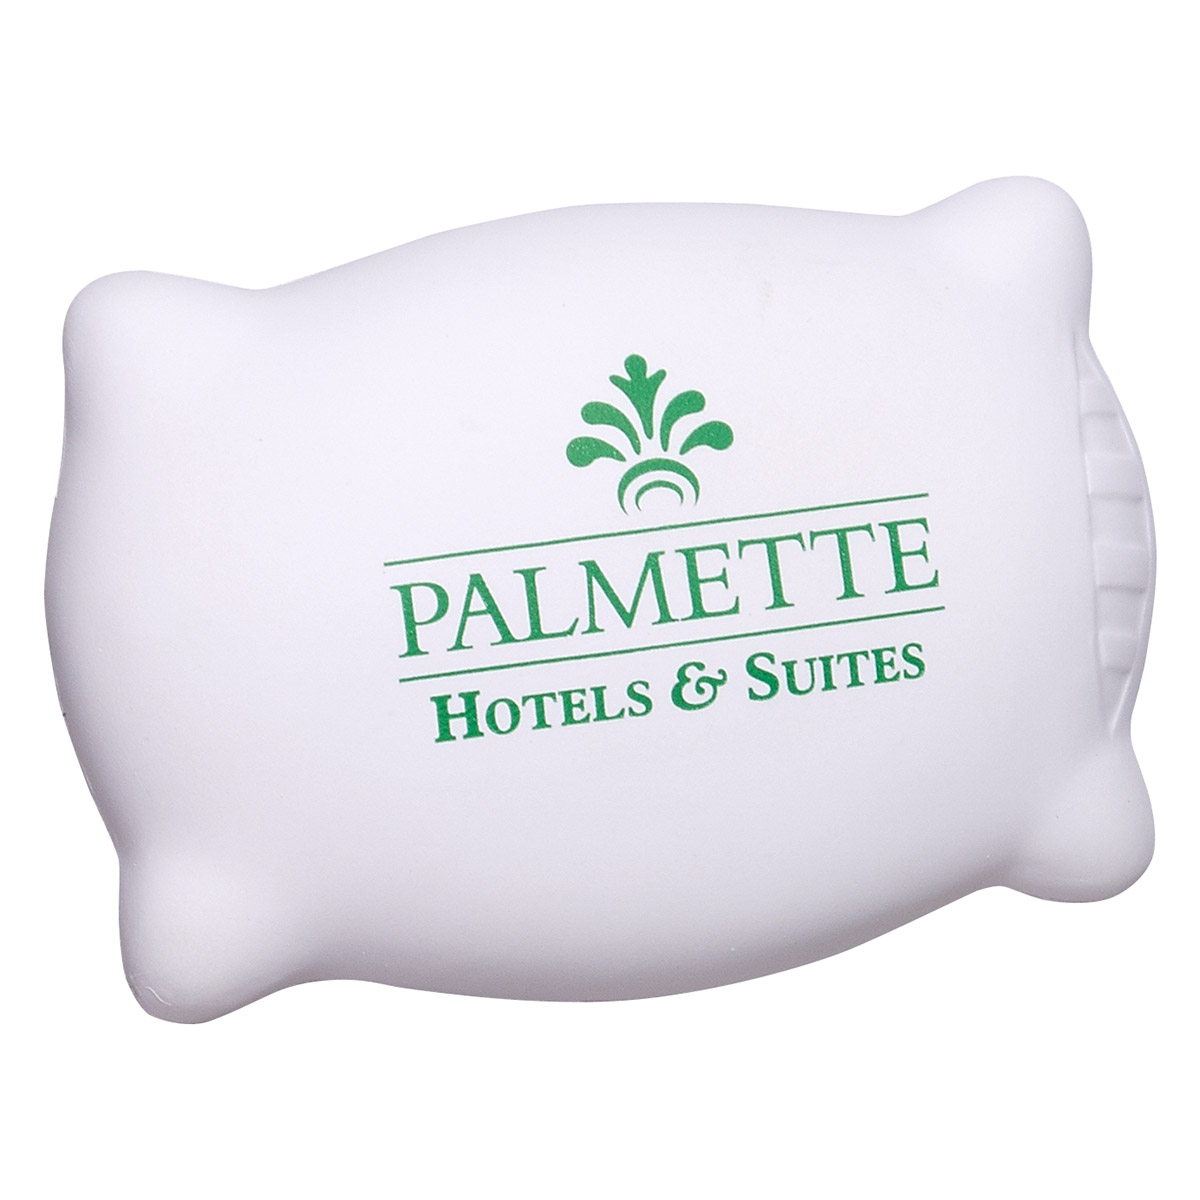 Pillow Stress Reliever, LTV-PW46, 1 Colour Imprint